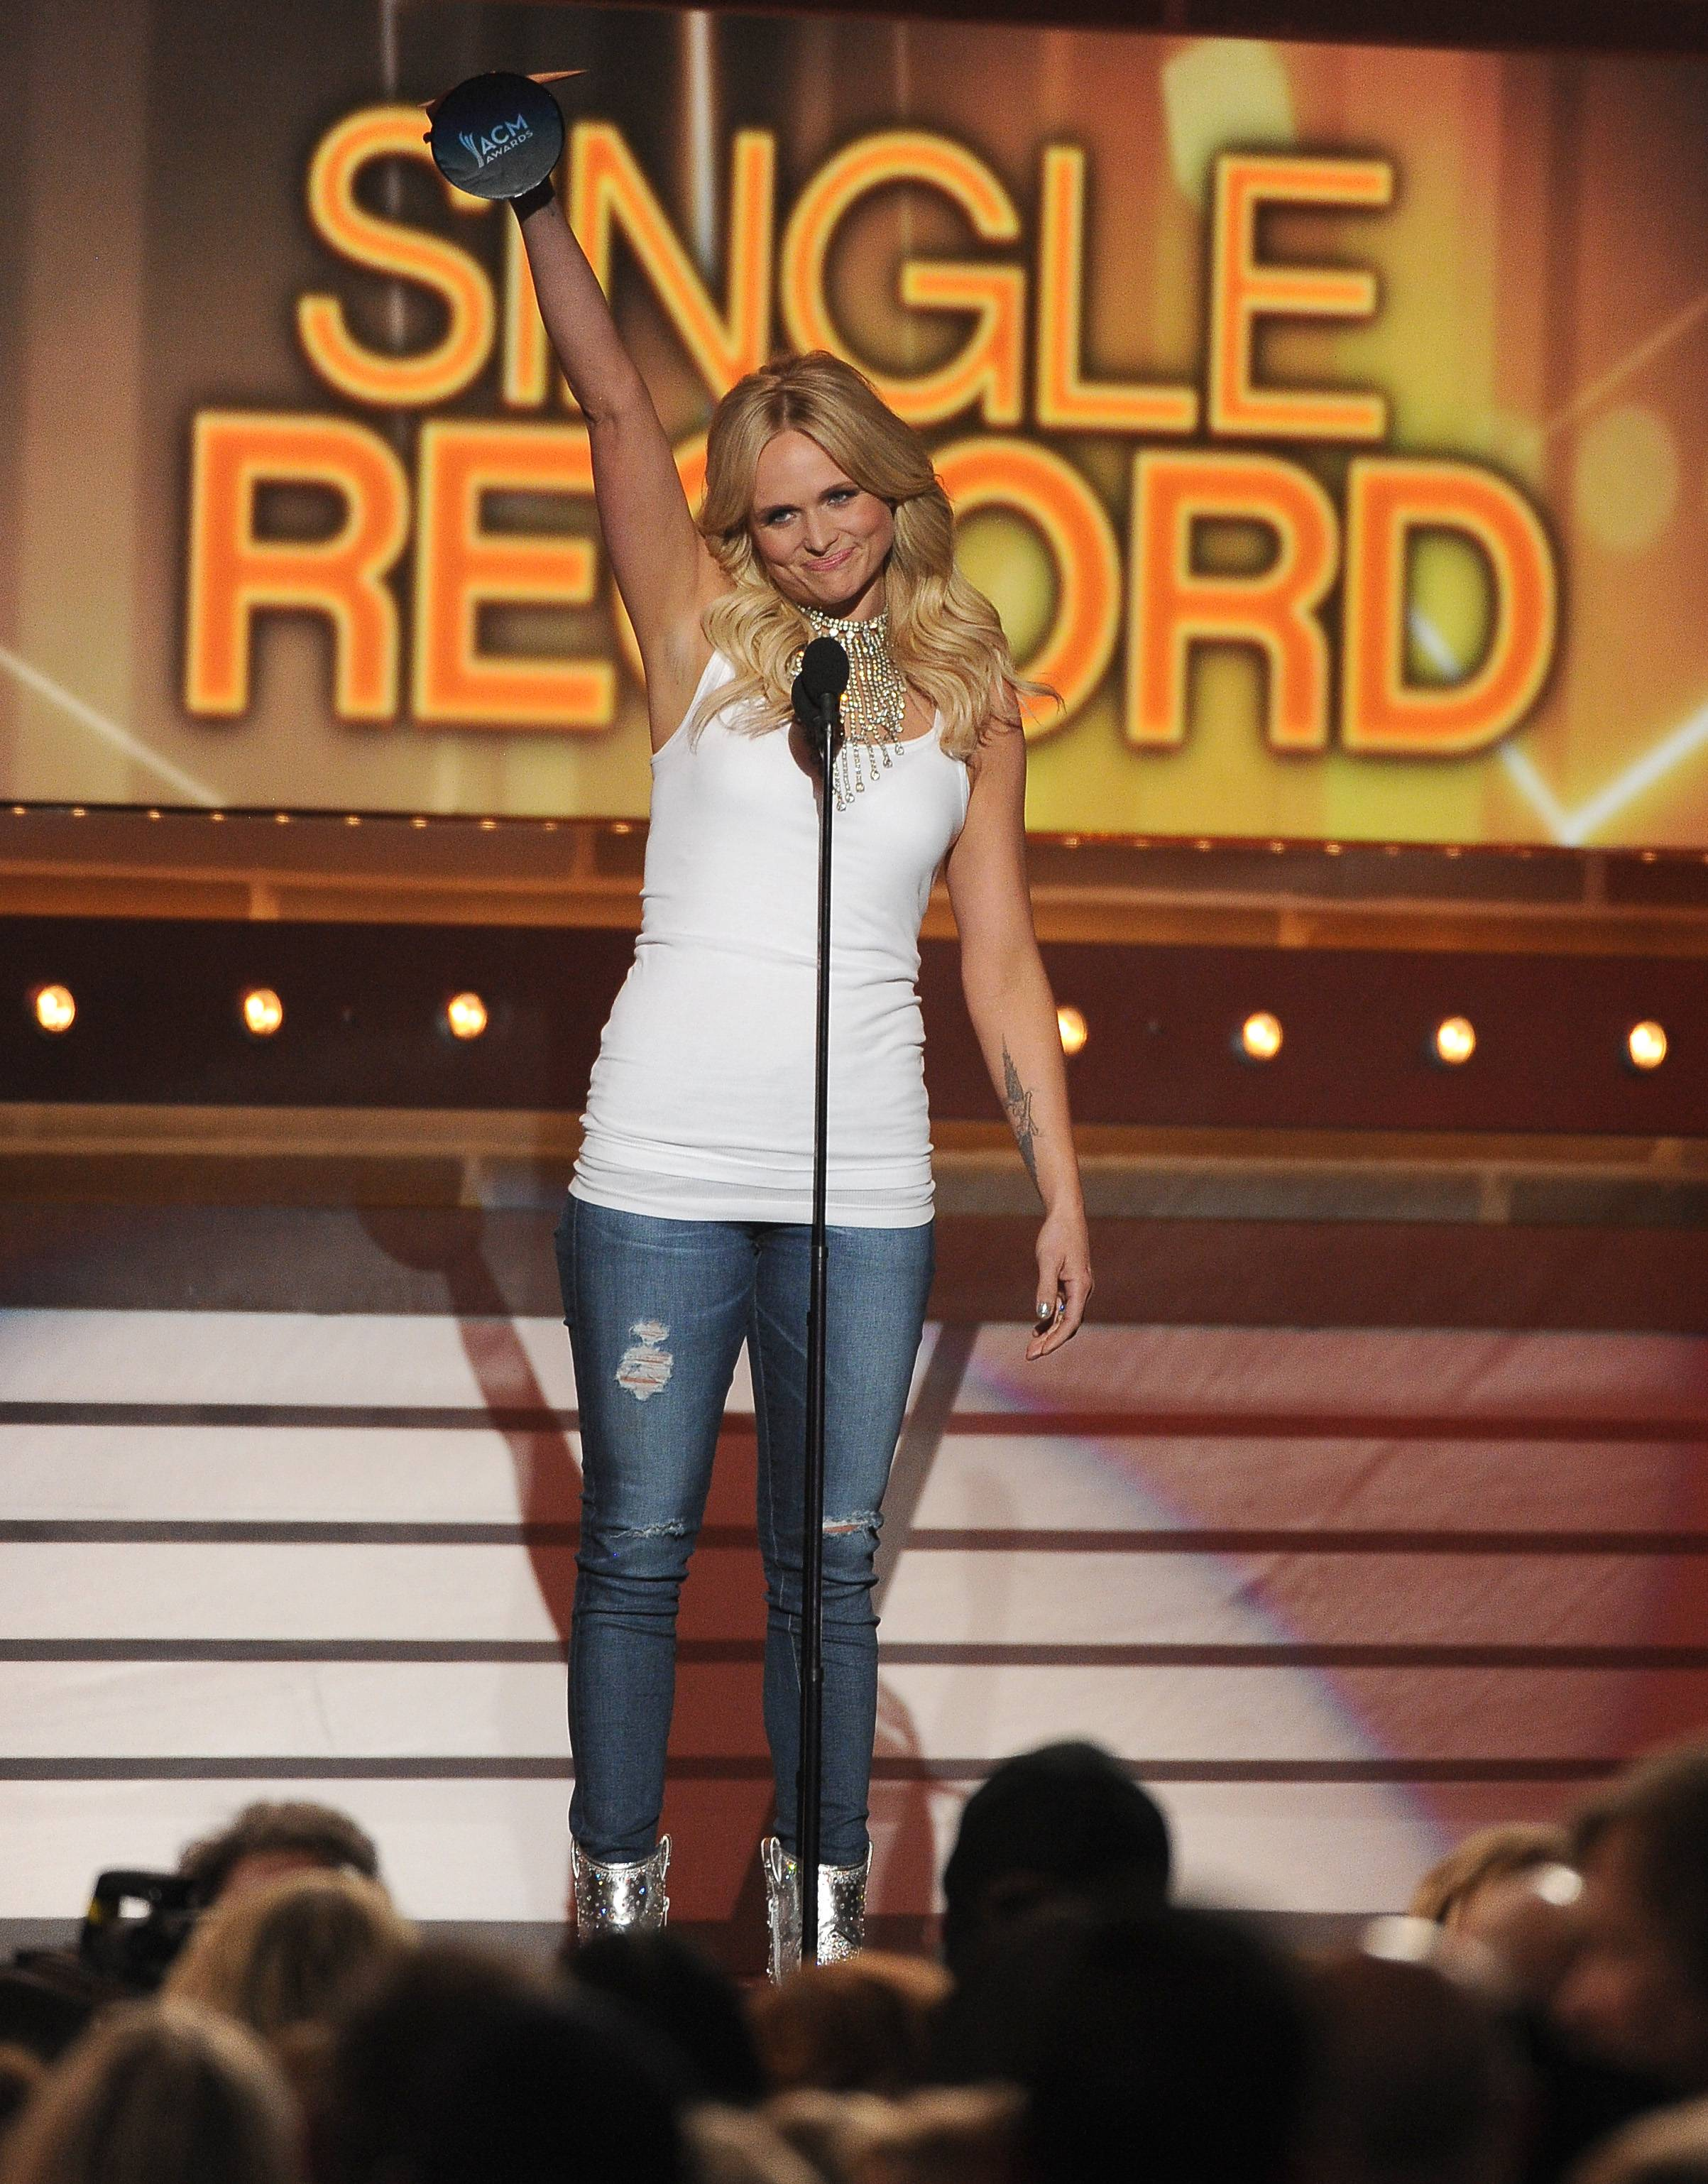 Miranda Lambert accepts the single record of the year award on stage at the 49th annual Academy of Country Music Awards.